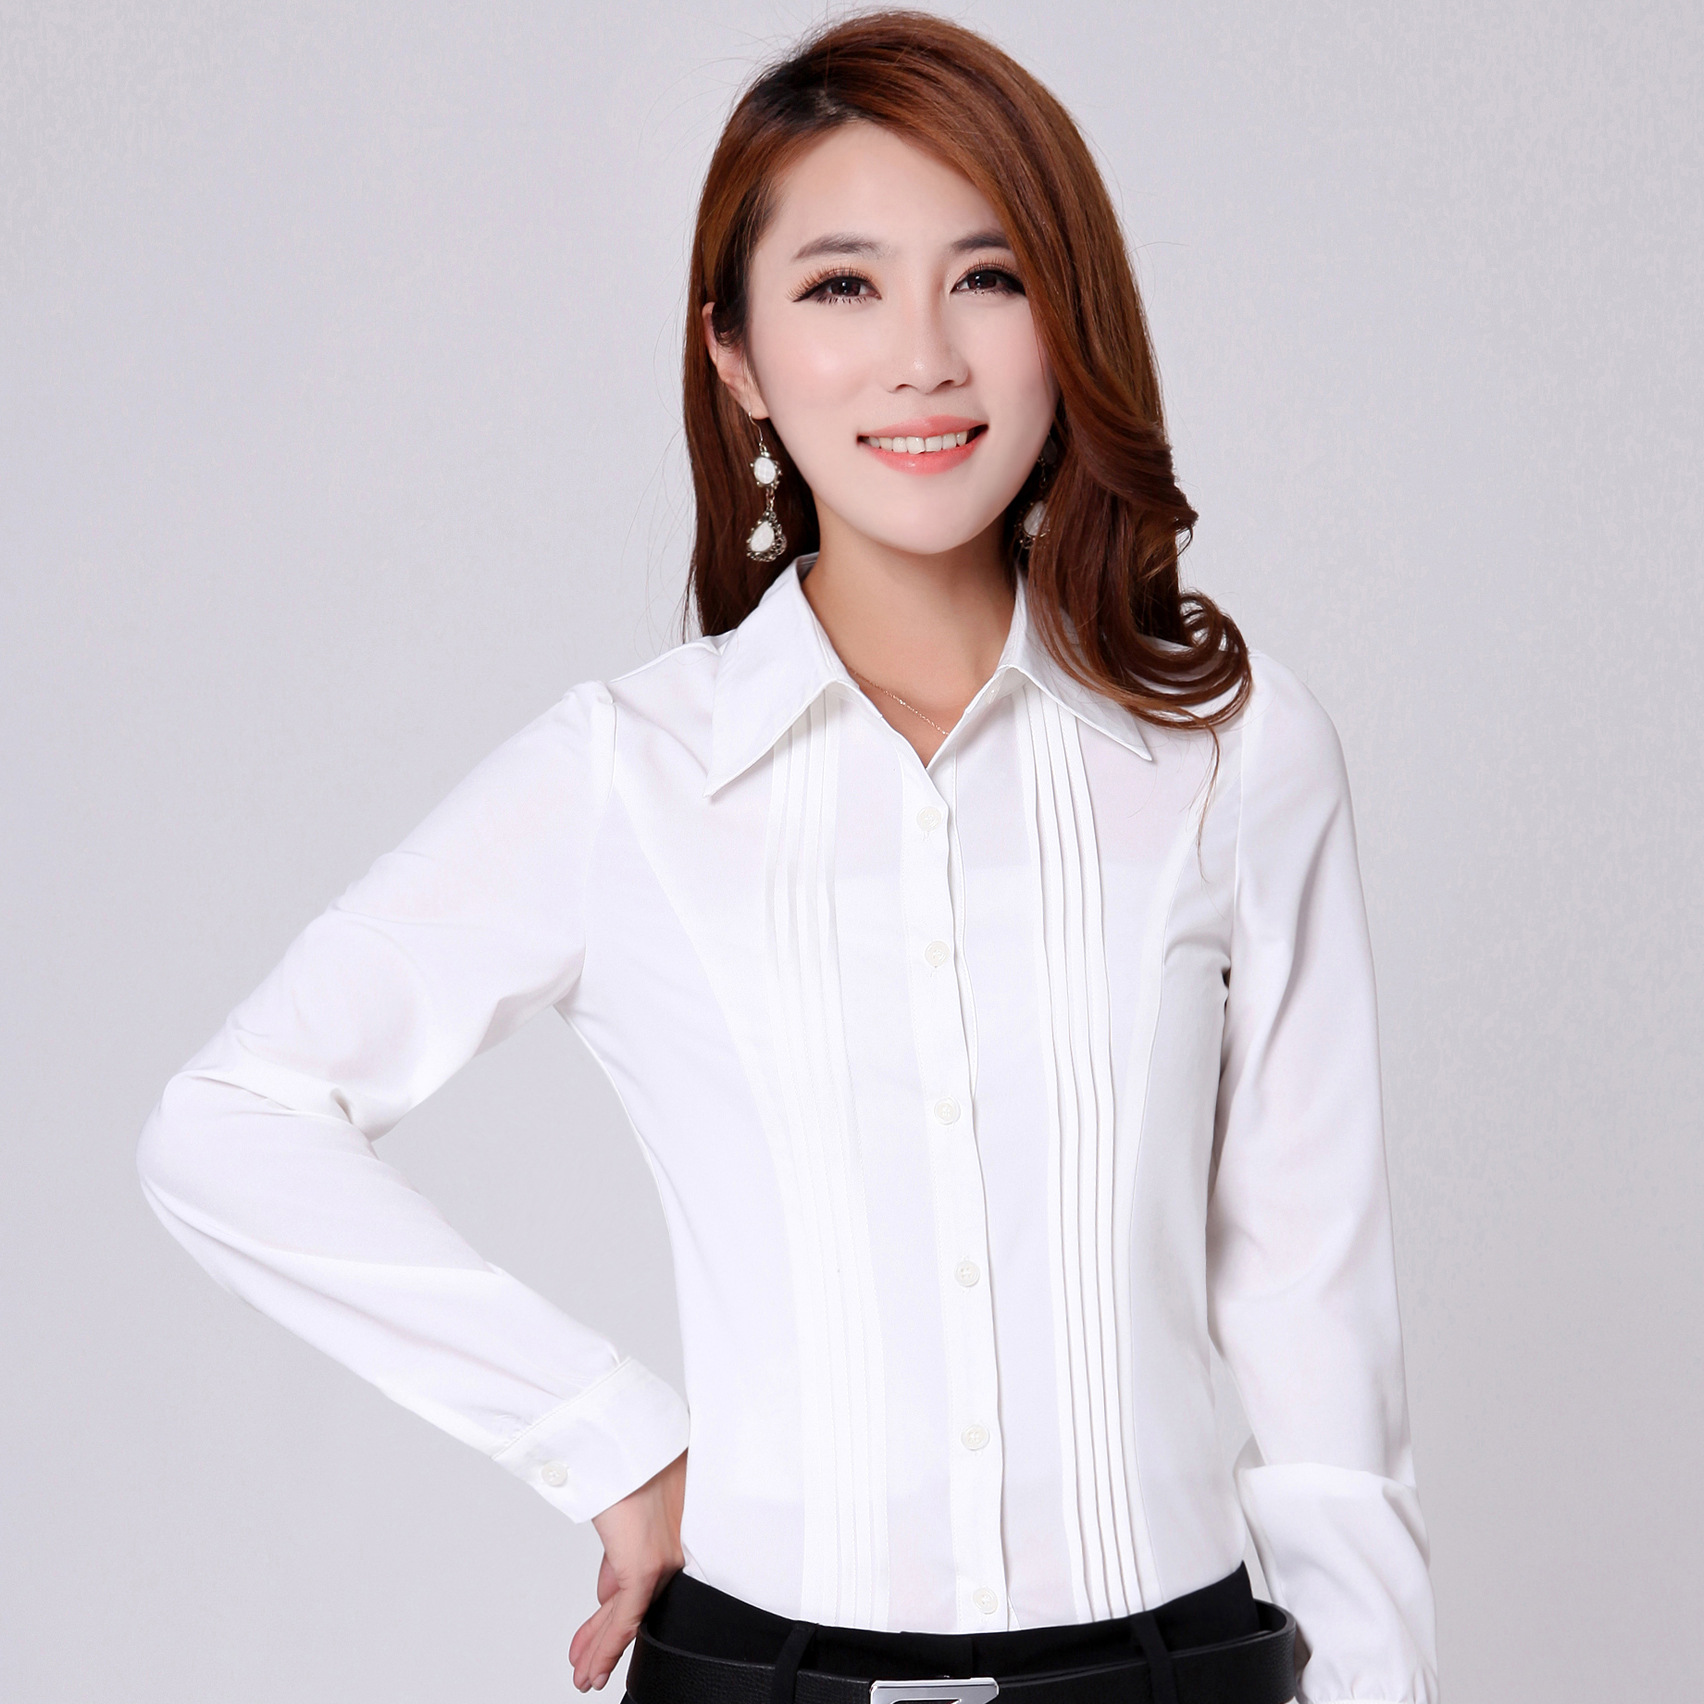 White Long Sleeve Shirt Womens Formal Formal Shirts Men S Clothing Shop Farmers Nz Online Discover The Latest Best Selling Shop Women S Shirts High Quality Blouses